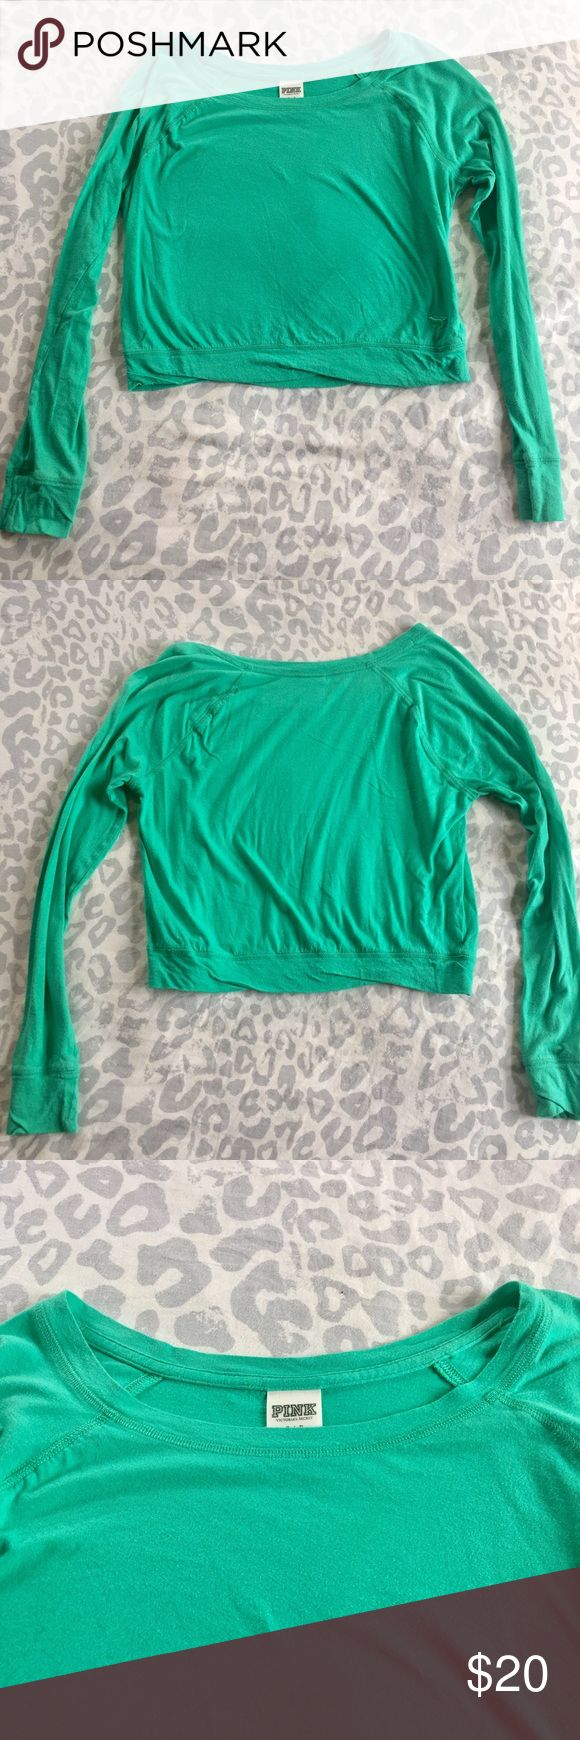 Victoria's Secret Pink Long Sleeve Cropped Top Designer: Victoria's Secret Pink Size: Small Details: -Victoria's Secret Pink Cropped Long Sleeve Shirt -Green -Slightly loose fit -Fitted at bottom (waist) -Bottom fits around belly button -60% Cotton 40% Modal -Bust 34/35 in.  NO TRADES  👯 Bundle two tops for a 15% discount!  💞Questions? I would love to help! PINK Victoria's Secret Tops Crop Tops